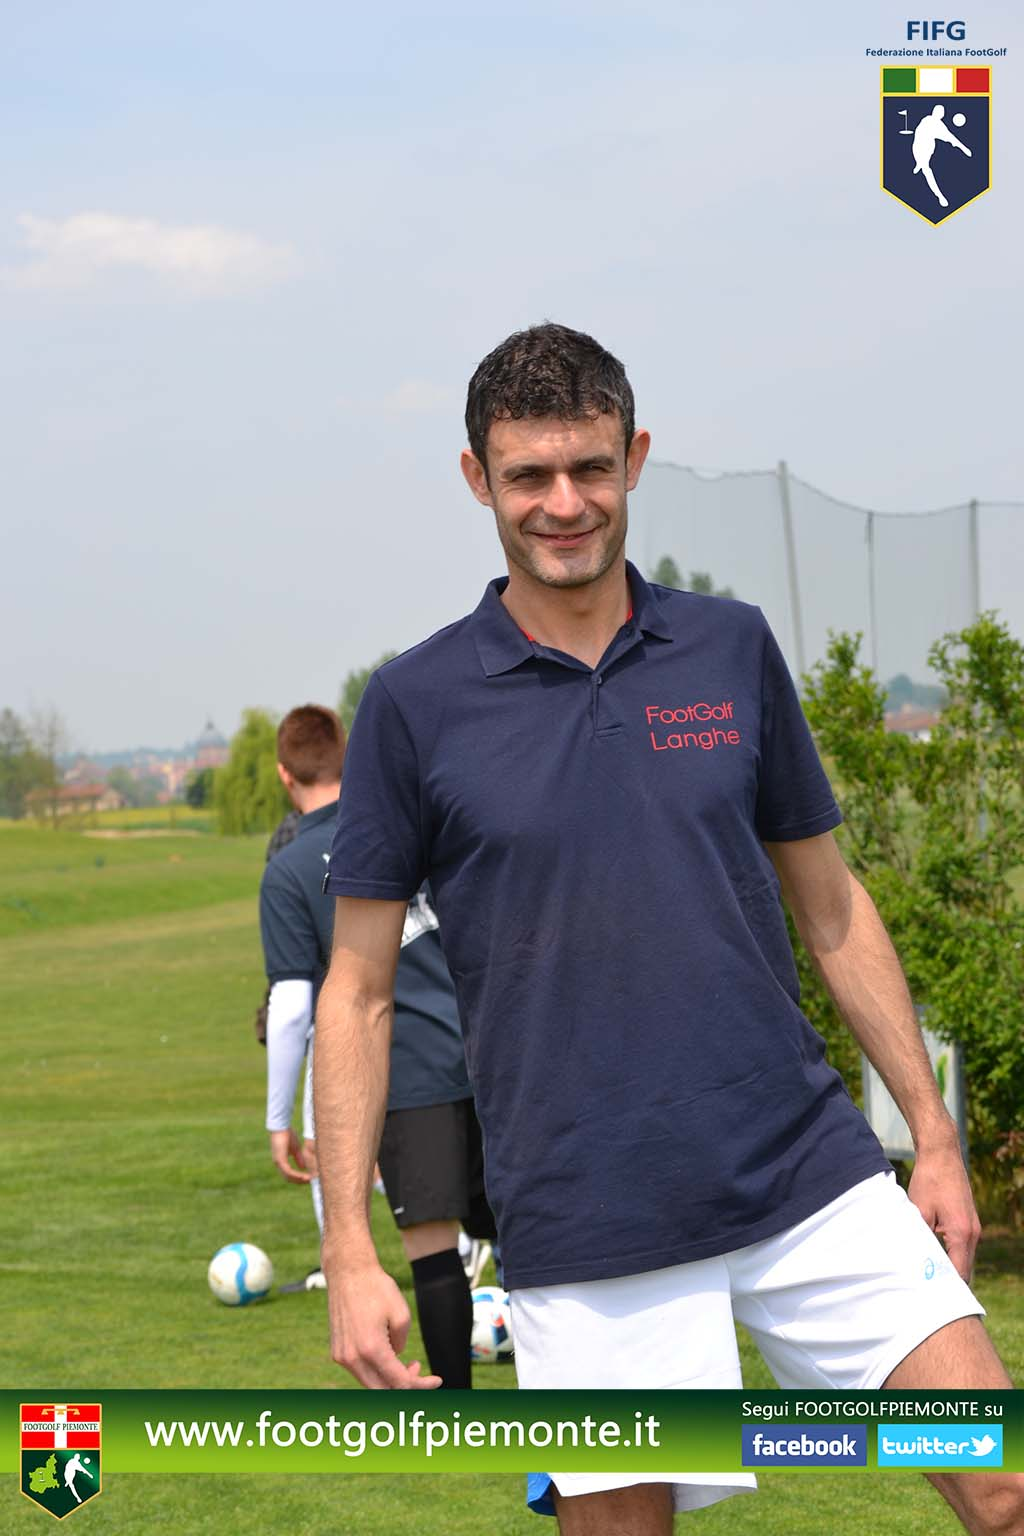 FOTO 9 Regions' Cup Footgolf Piemonte 2016 Golf Città di Asti (At) 30apr16-58